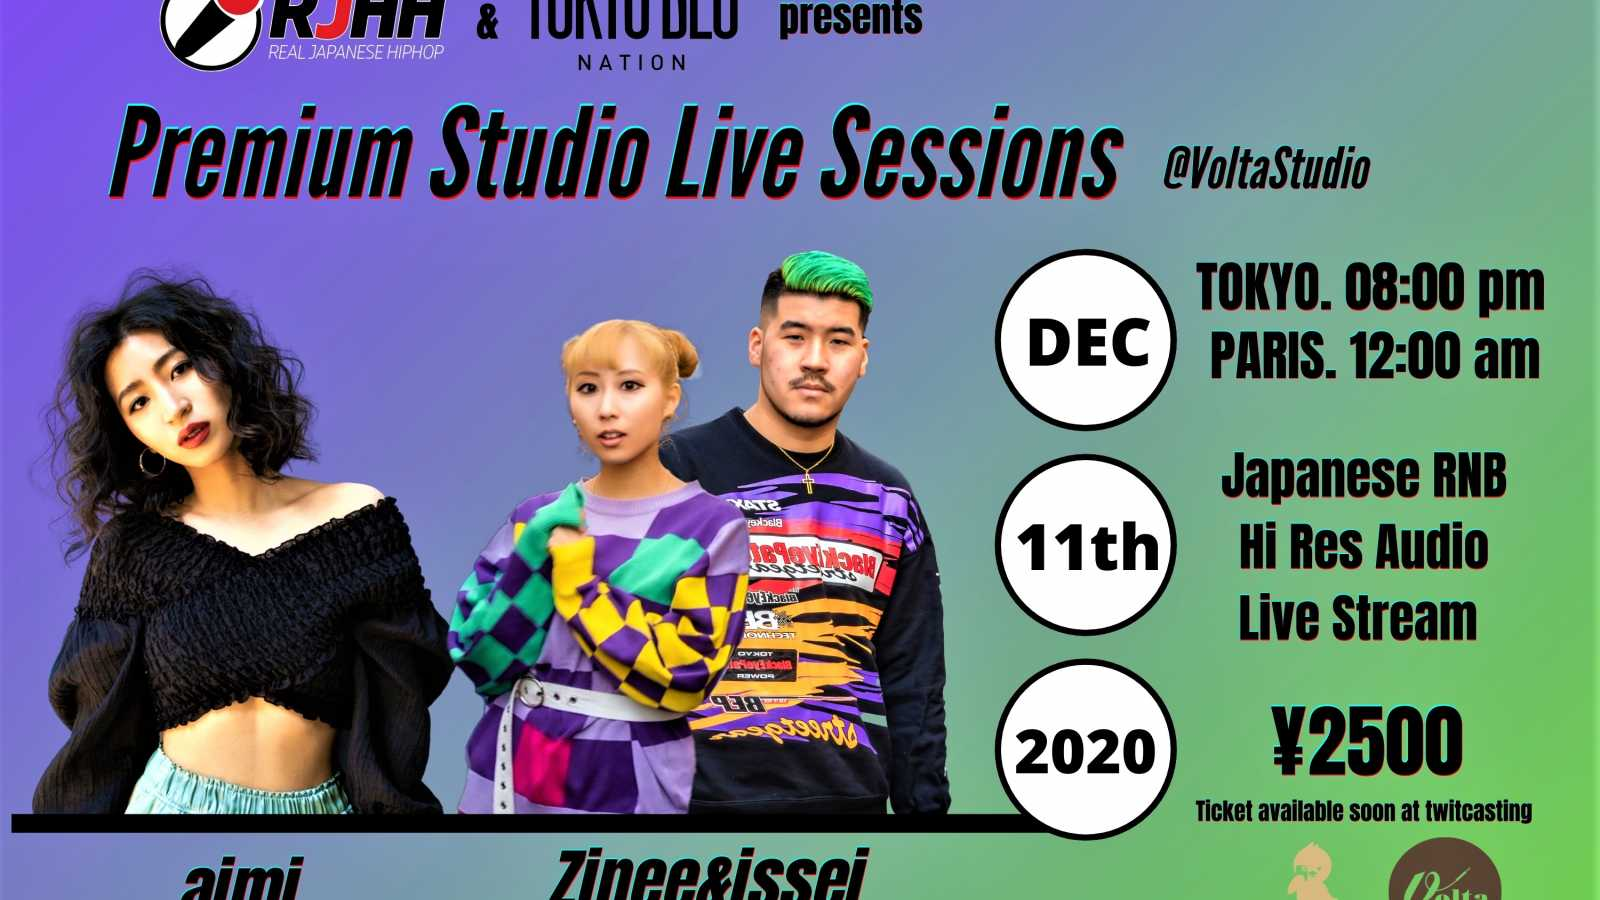 aimi and Zinee&issei to Live Stream Studio Concert © Tokyo BLU Nation & Real Japanese Hip-Hop